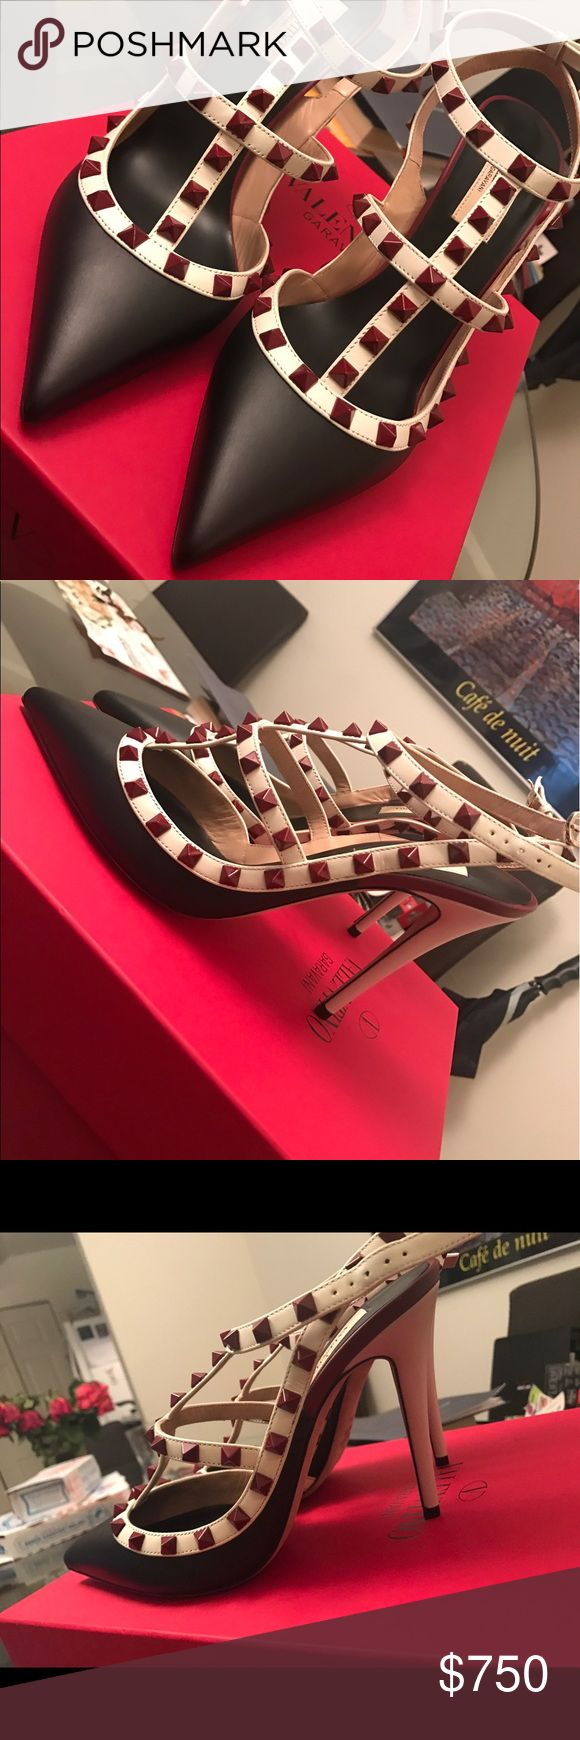 NWT Valentino Red Rose Black Rockstud Pumps! Brand New! Never worn! 100% authentic. From the spring/summer 2016 collection. 100% Leather. Black, red rockstuds. Absolutely gorgeous, one of a kind! Valentino Garavani Shoes Heels